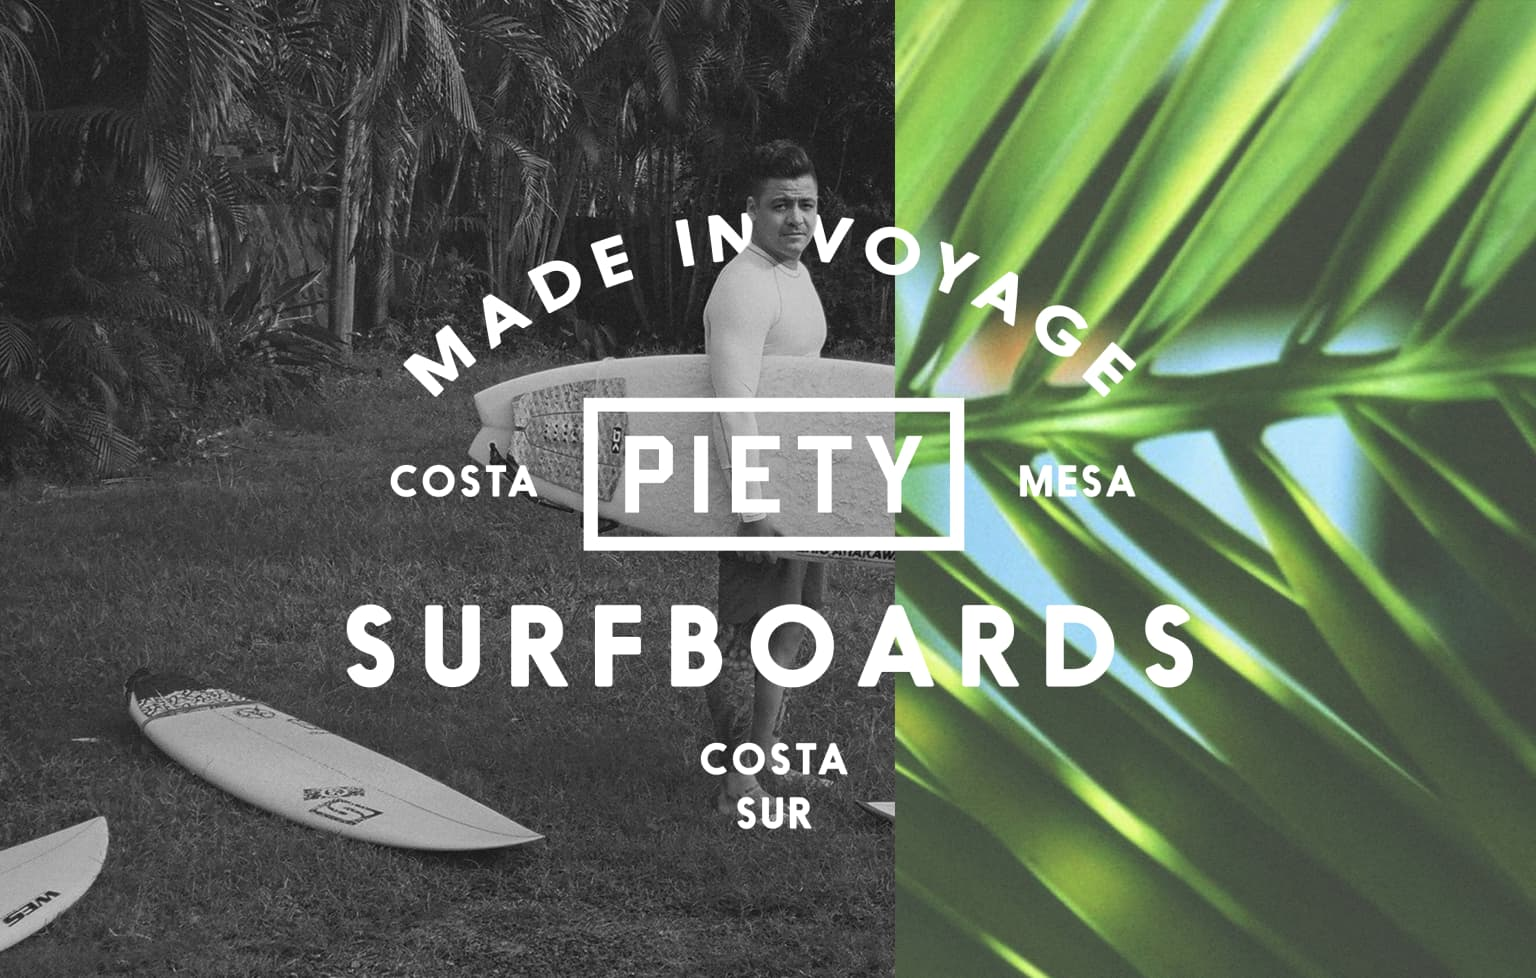 Piety Surfboards